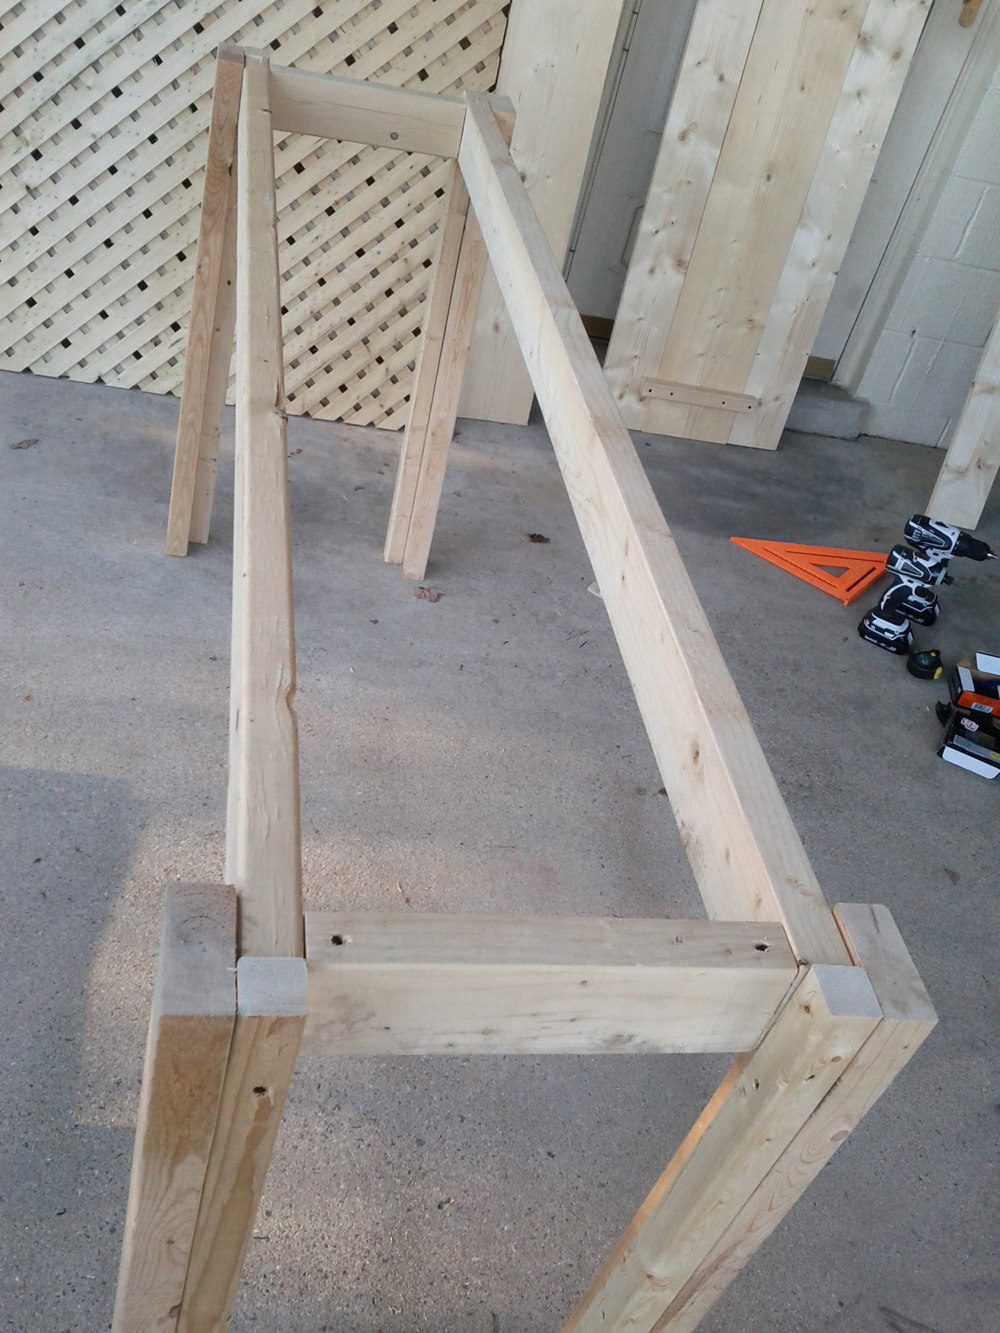 Picture of Attaching Four Legs Together to Complete the First Frame